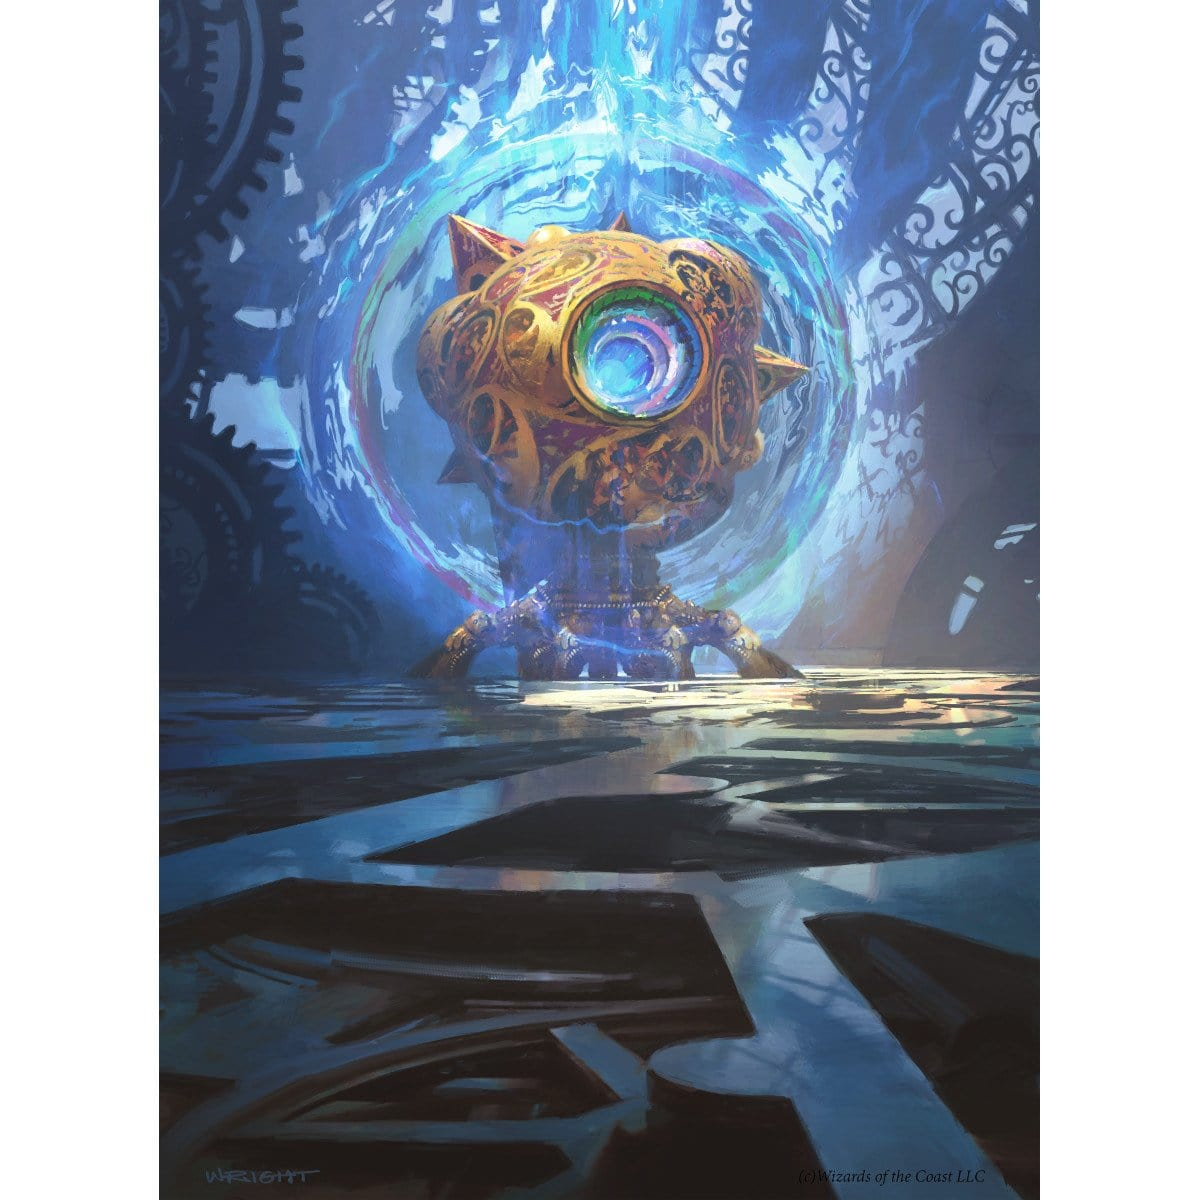 Sphere of Resistance Print - Print - Original Magic Art - Accessories for Magic the Gathering and other card games